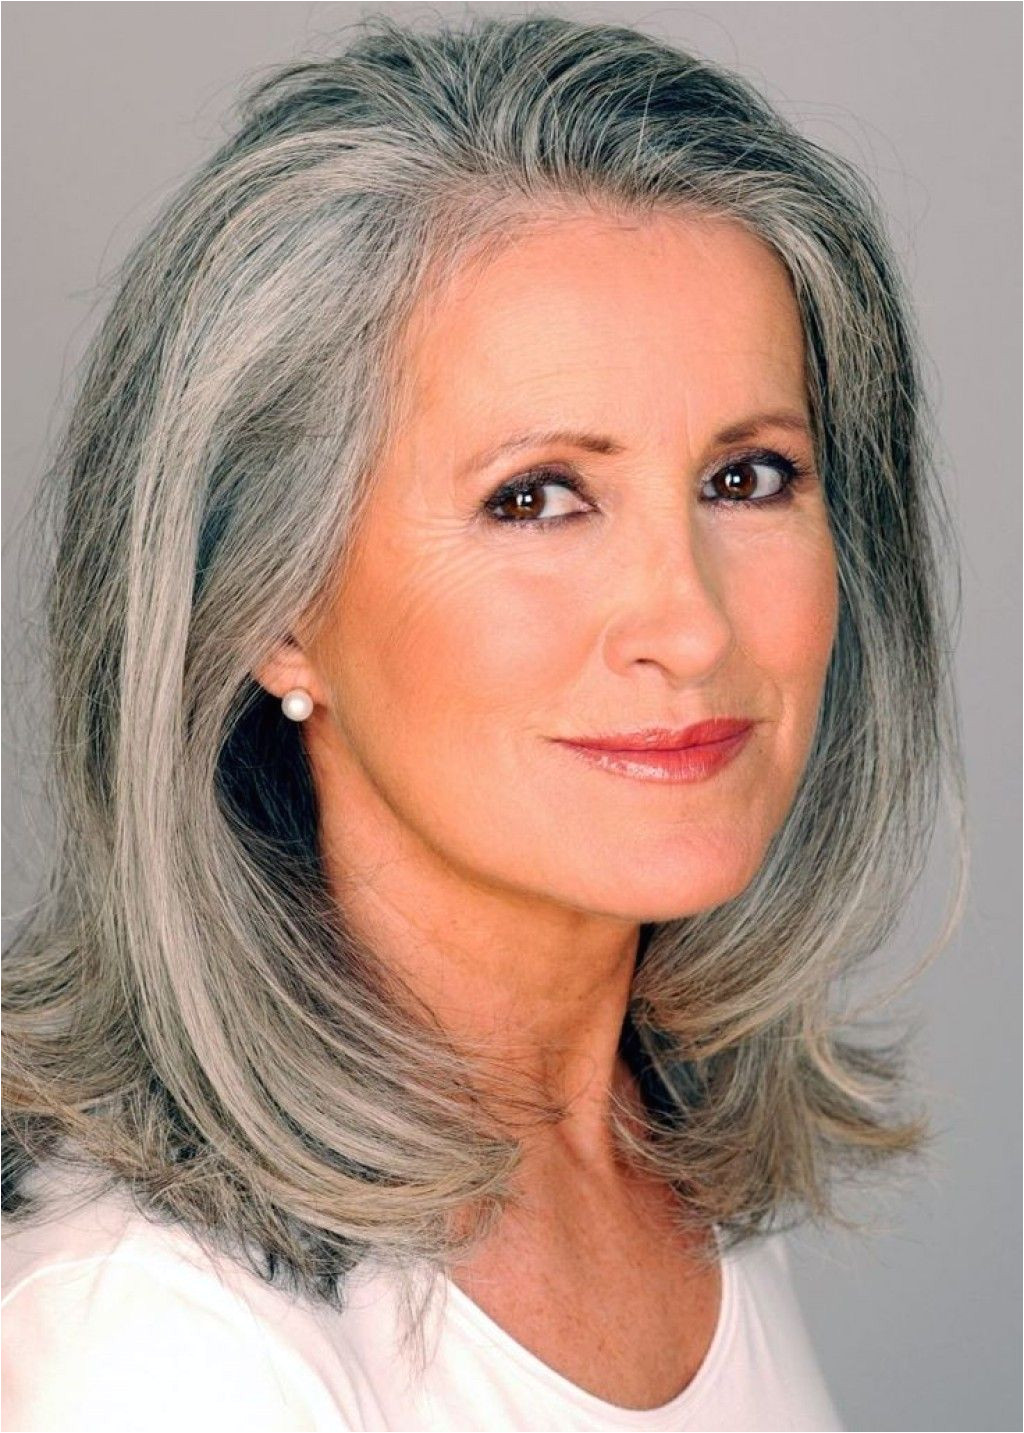 So many women fight the appearance of gray hair I say why not embrace this stunning look and make the most of it